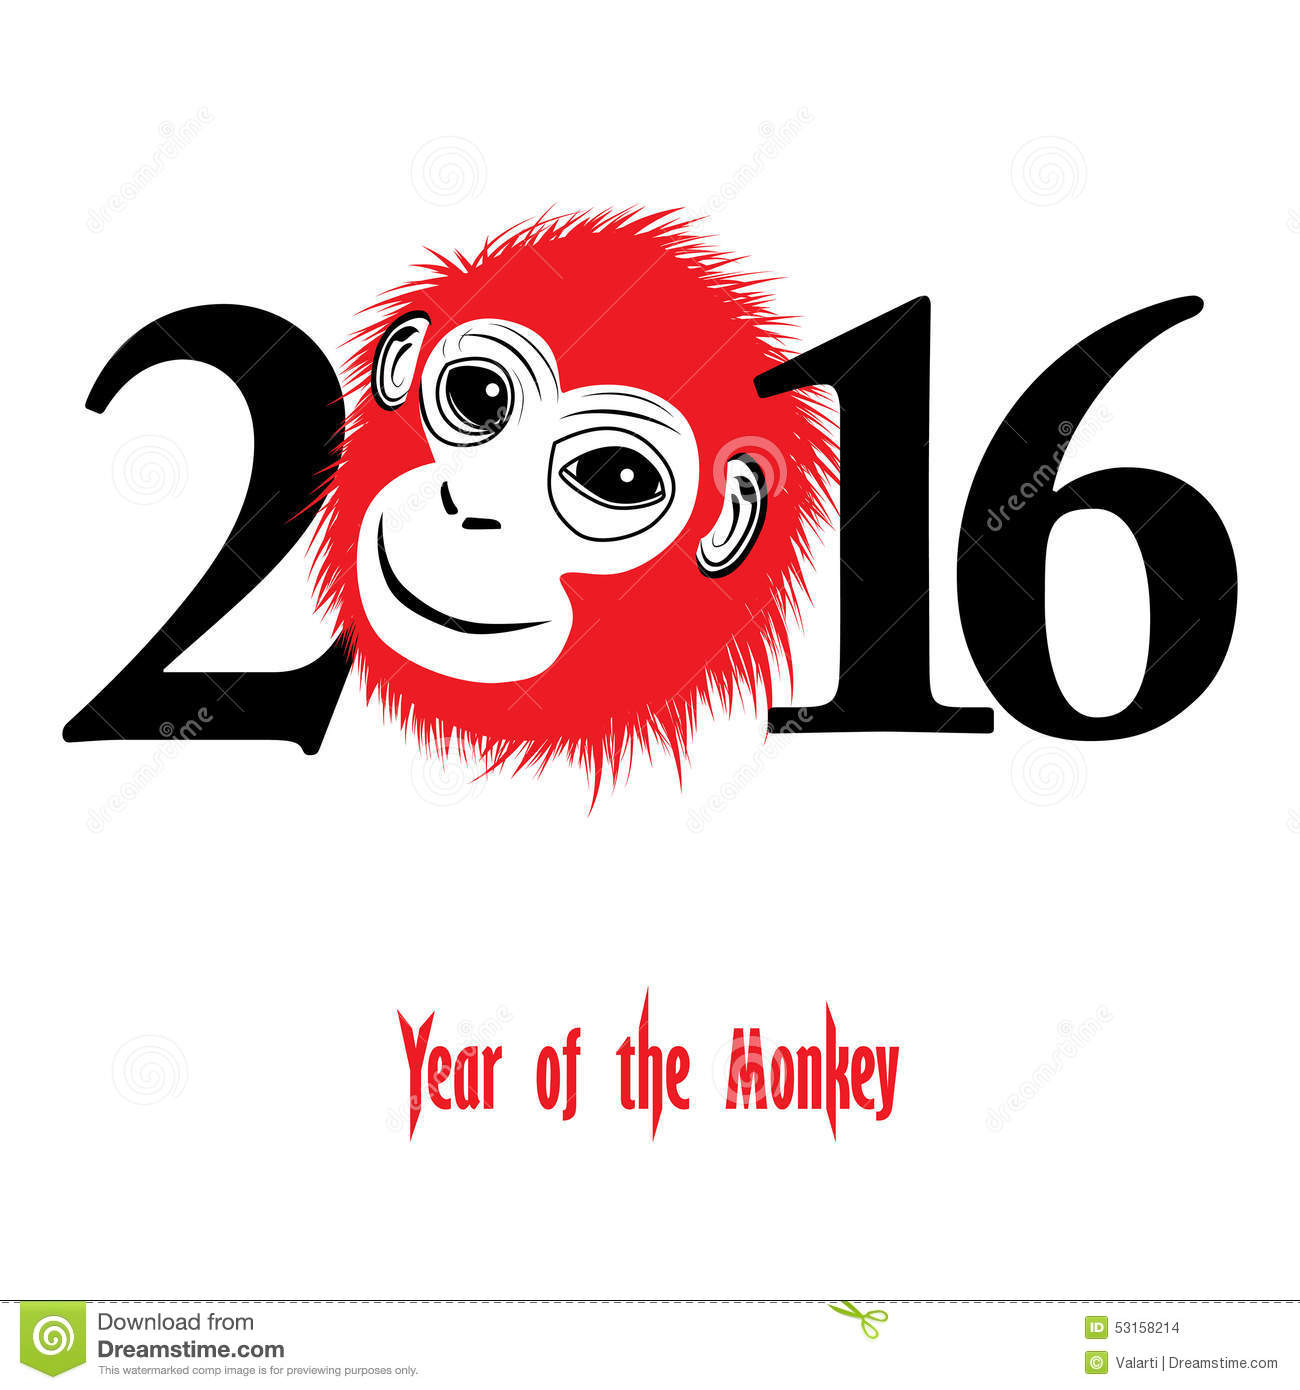 Jooker Lai Lai Lai Audio Theem Downlod: Chinese New Year 2016 (Monkey Year) Stock Vector